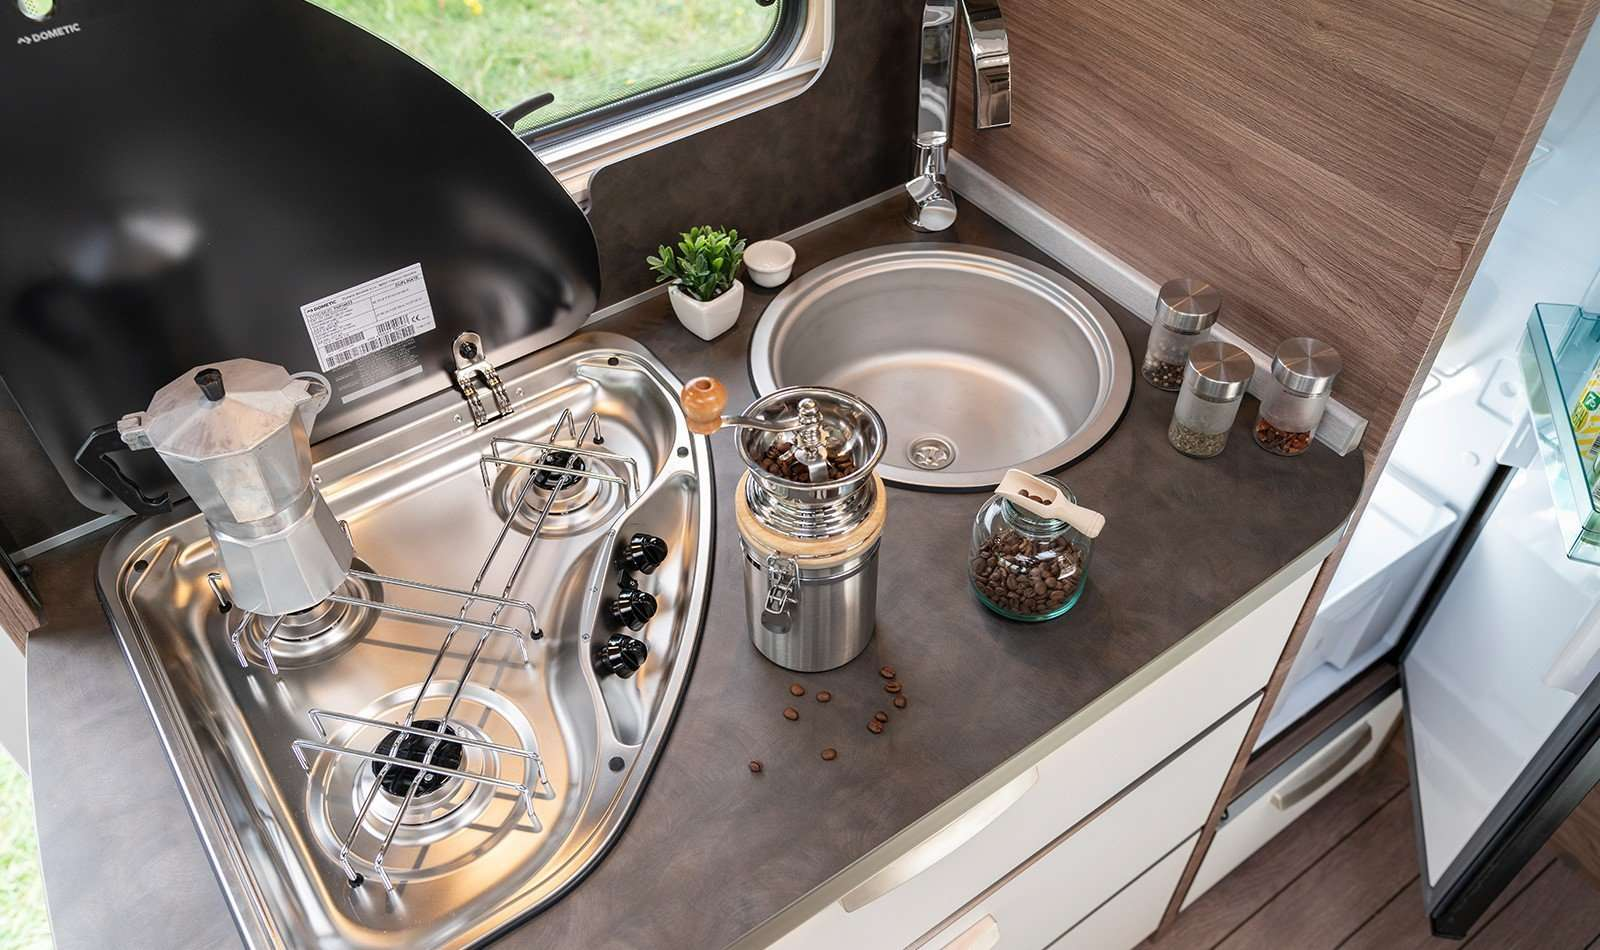 Knaus Live i 650 MEG kitchen